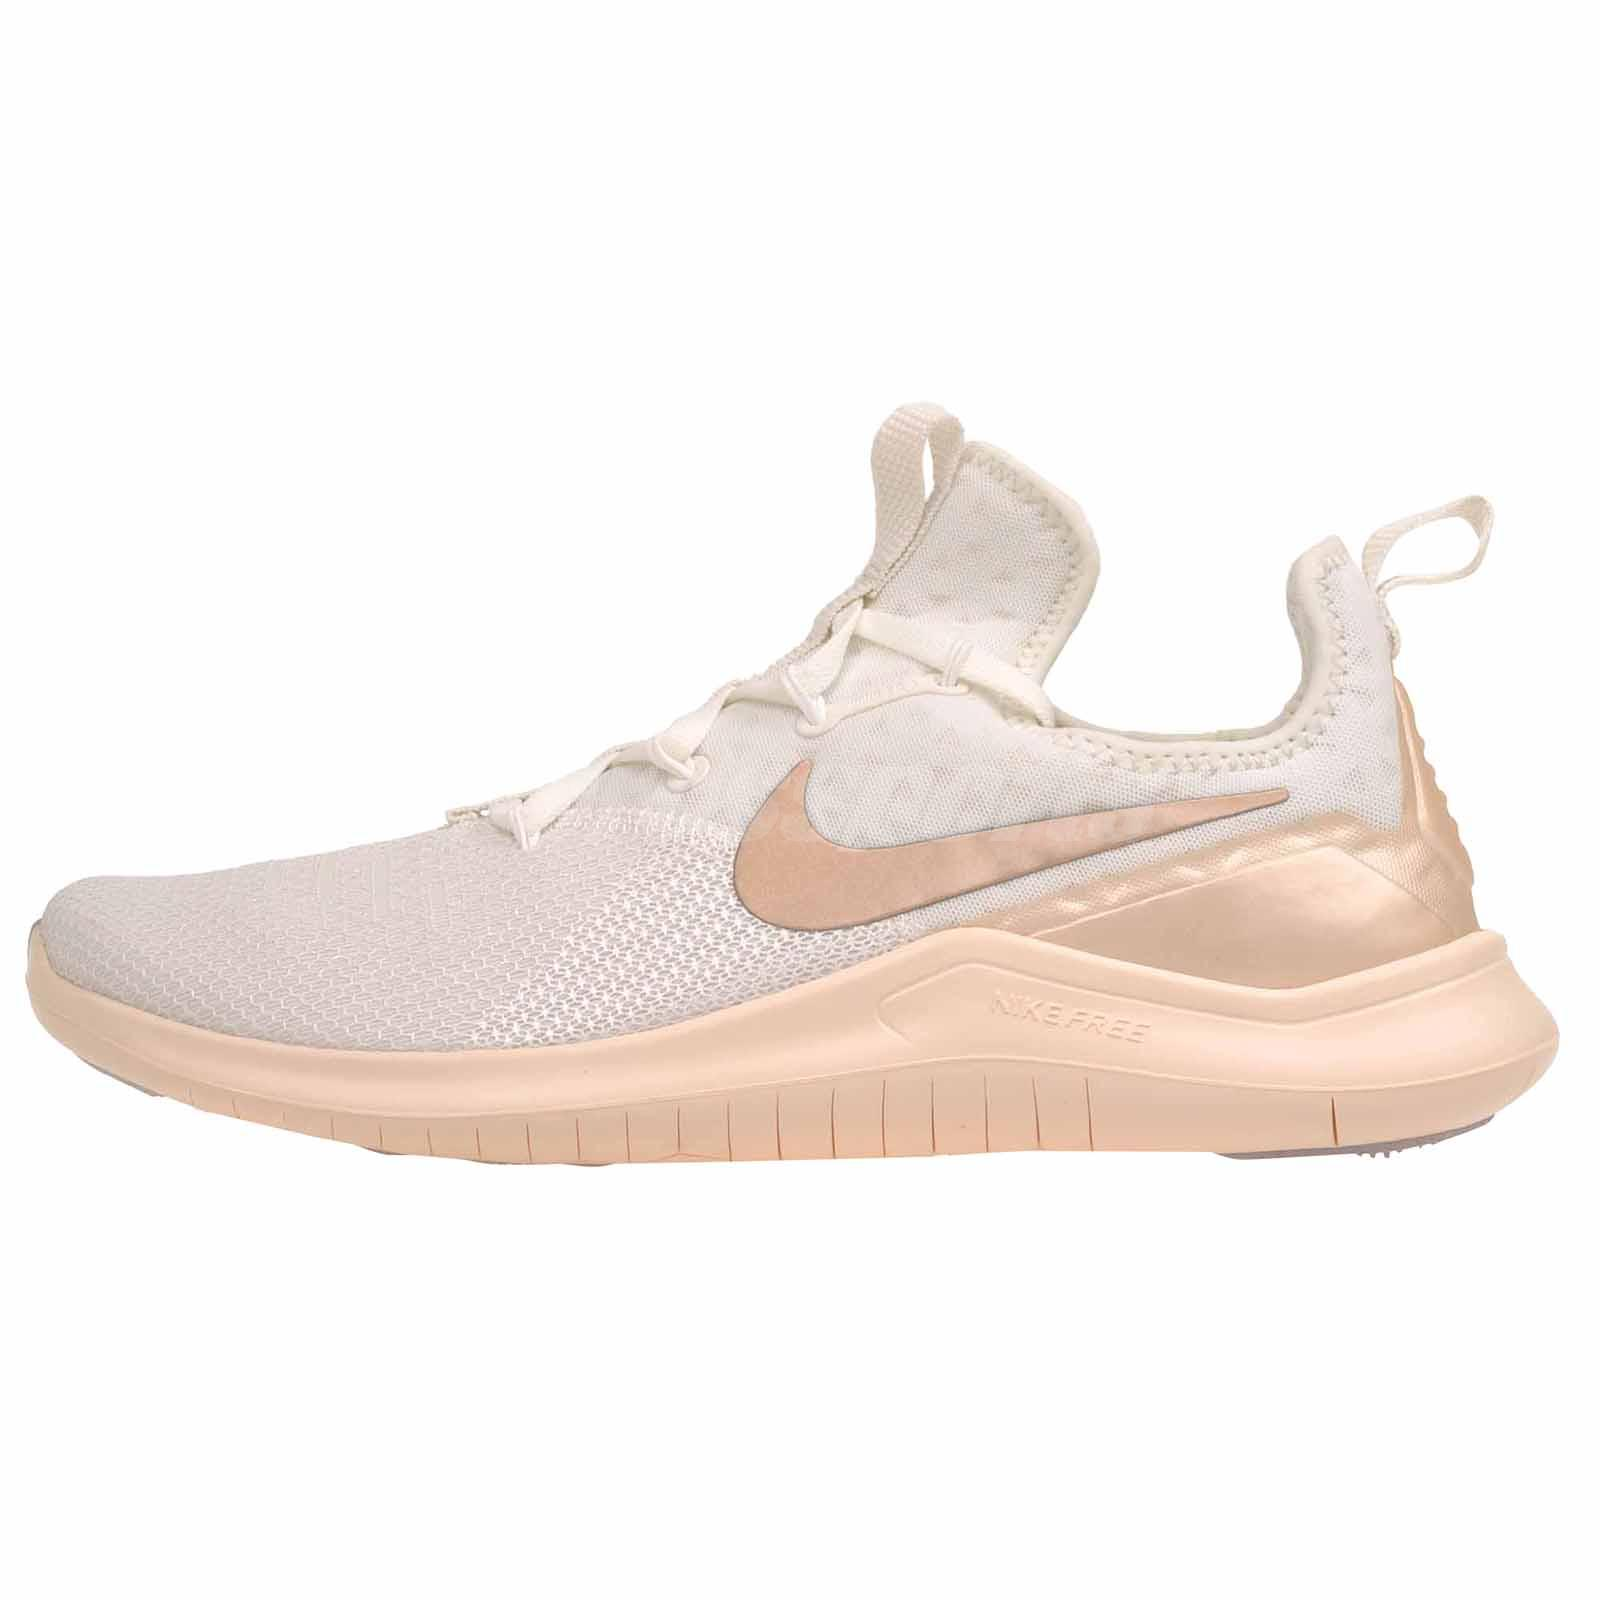 Details about Nike Wmns Free TR 8 Prem Cross Training Womens Trainers Shoes Sail CD9562 198